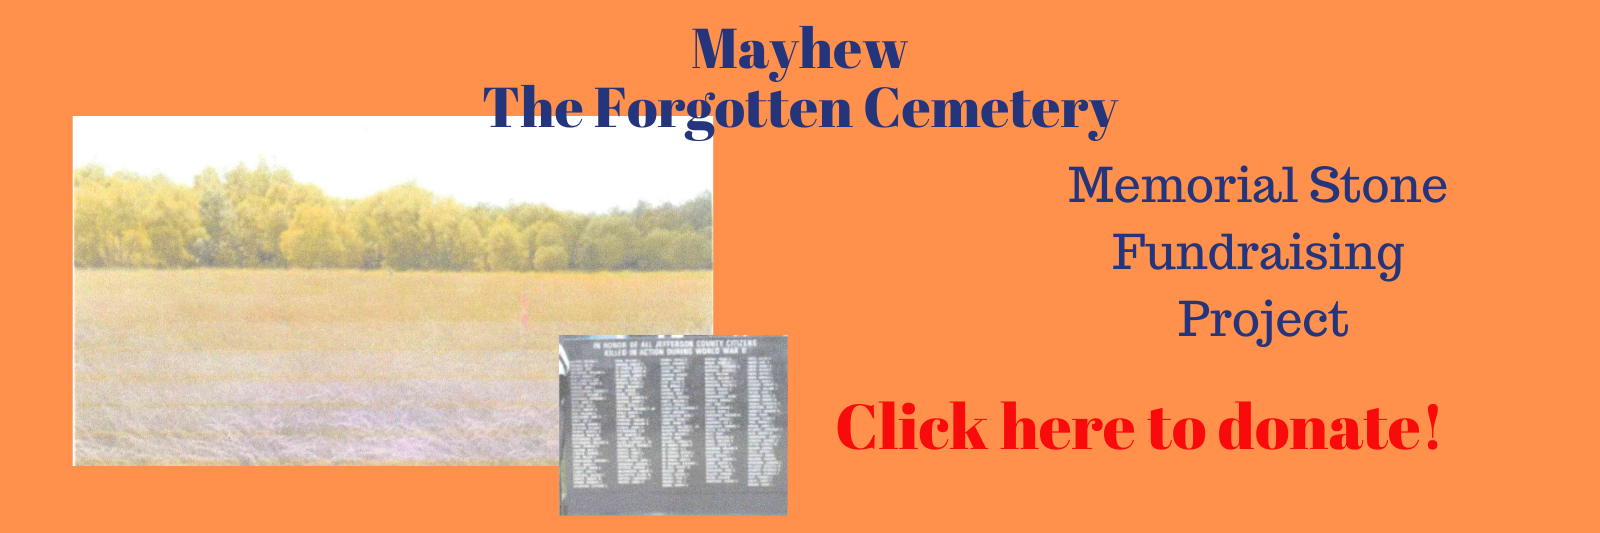 Mayhew-The-Forgotten-Cemetery-website-cover.png